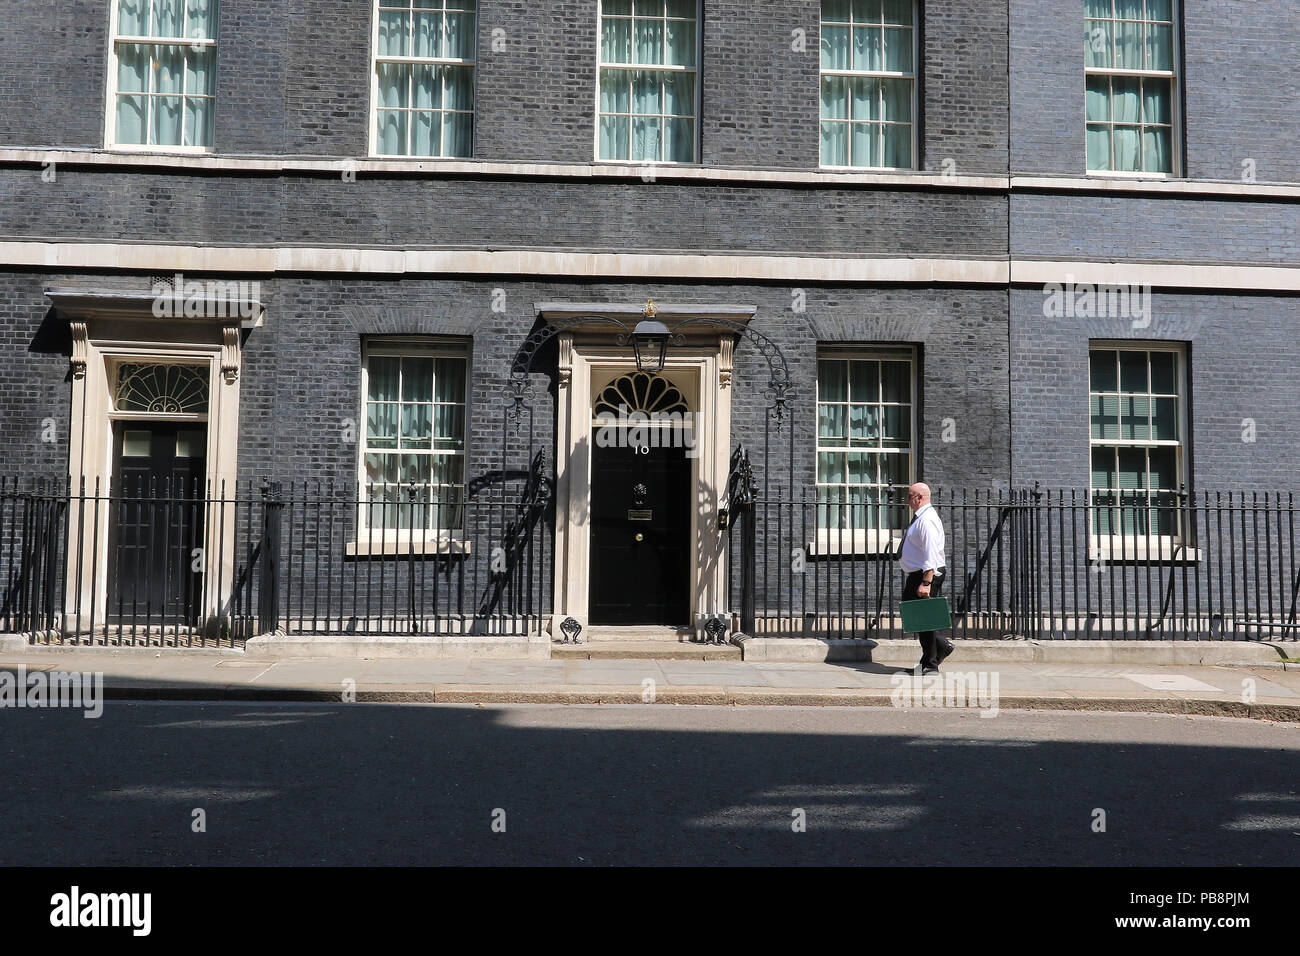 London, UK. 28th July 2018. British Prime Minister's Office, 10 Downing Street, Westminster, London, UK, 27 July 2018, Photo by Richard Goldschmidt Credit: Rich Gold/Alamy Live News Stock Photo